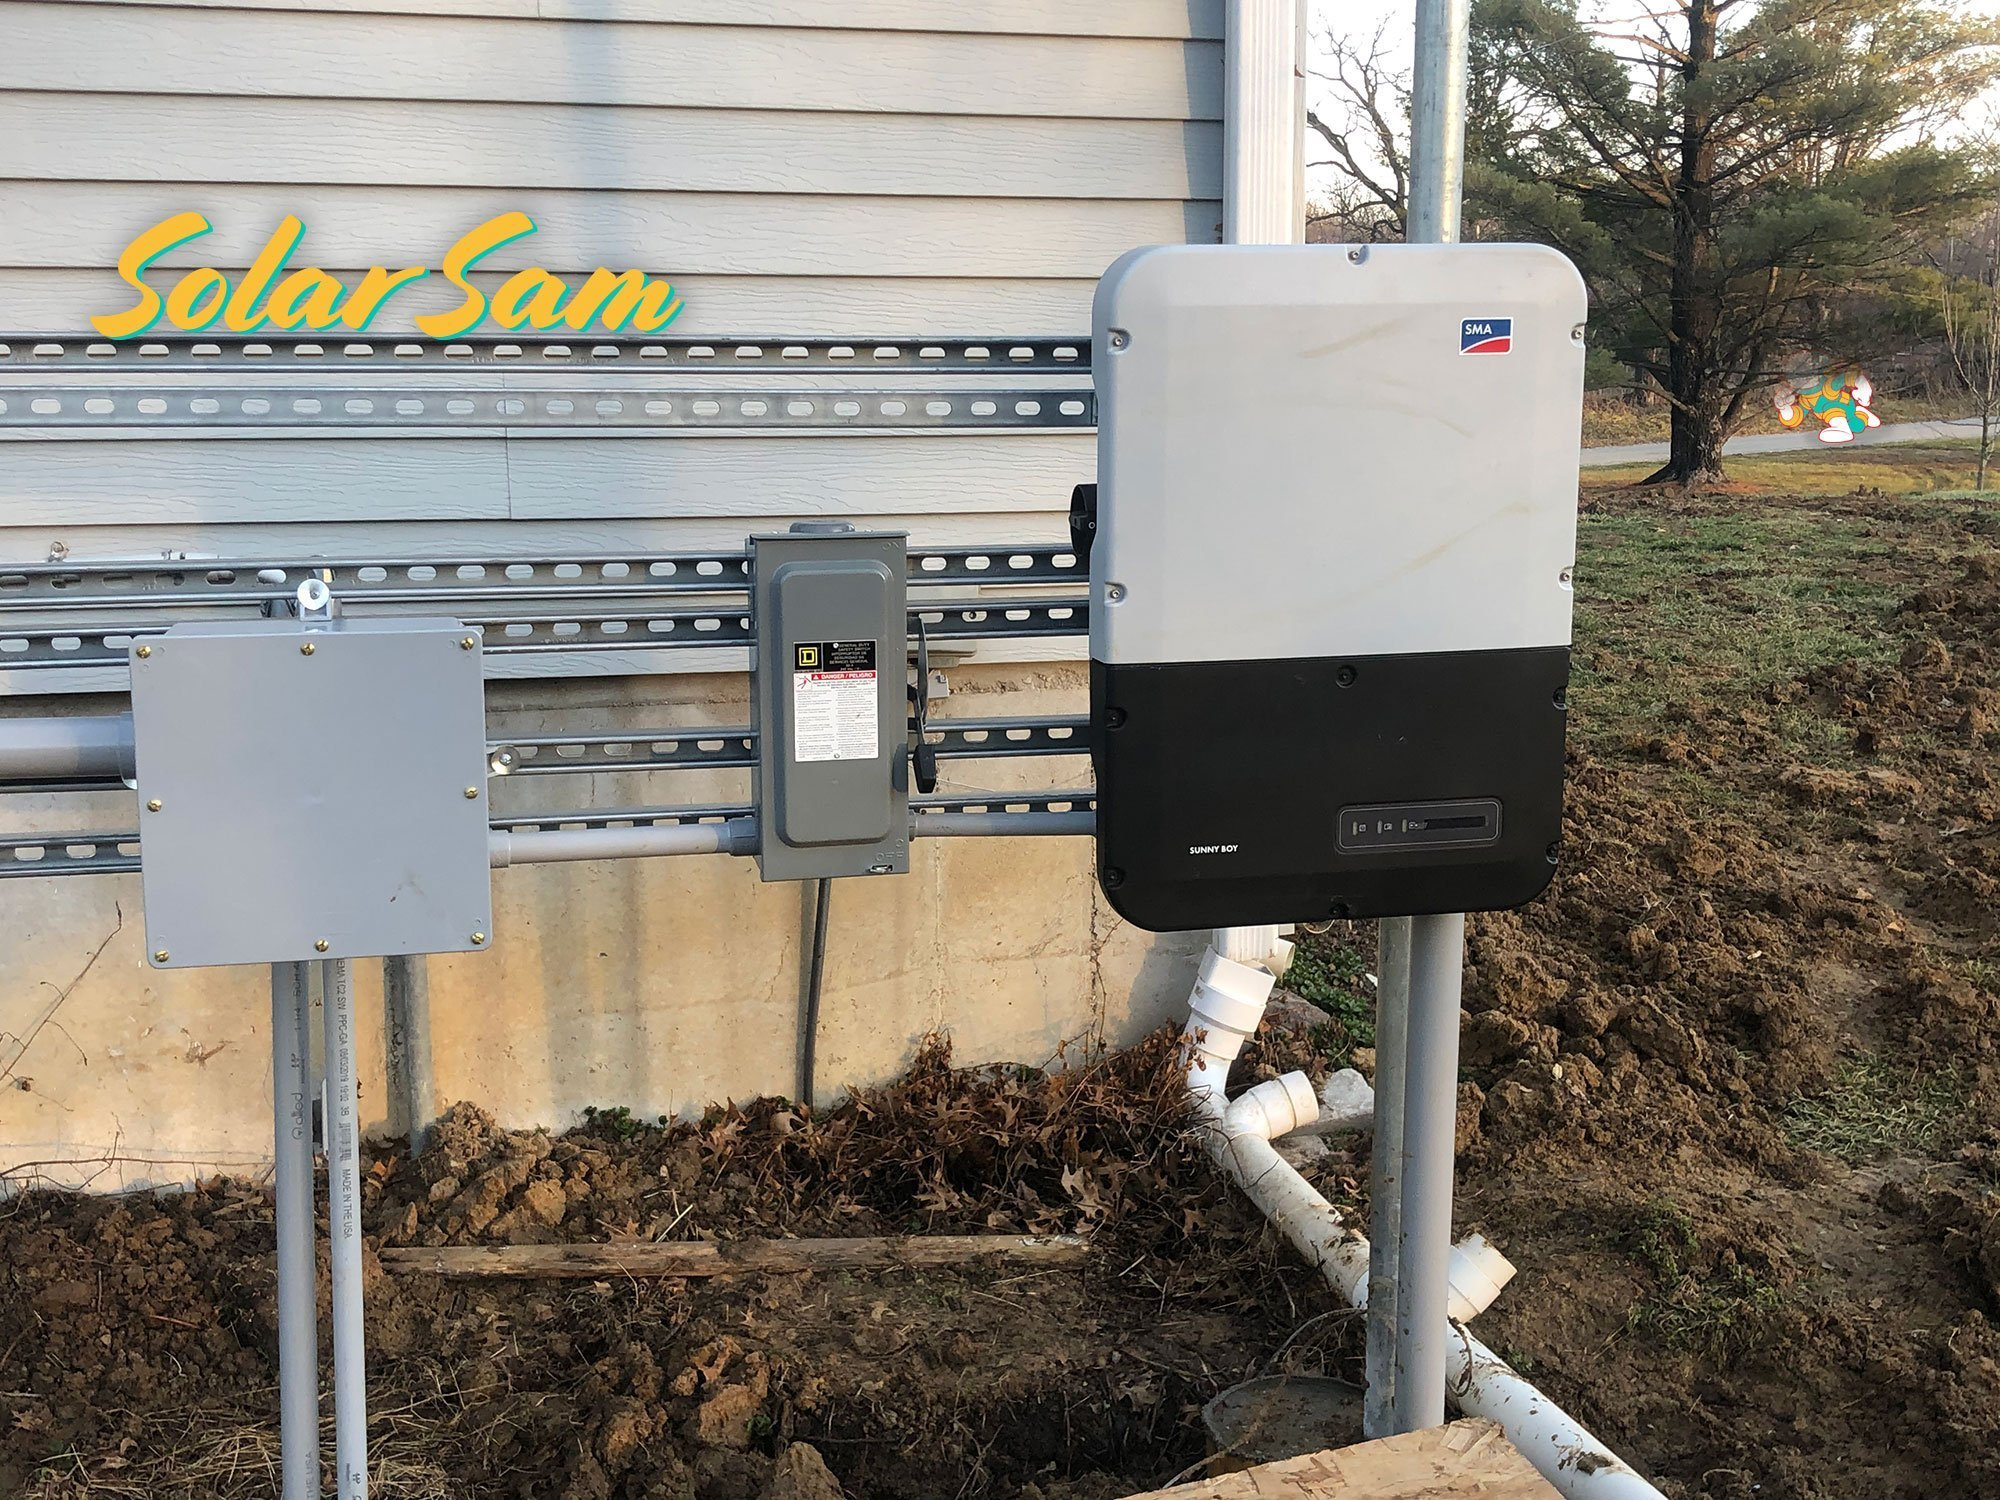 Solar Panel Installation in Centralia, MO using SMA Solar Inverters for an Electrical Grid-Connection. Providing Green Electricity by Solar Sam to a Residential House in Missouri